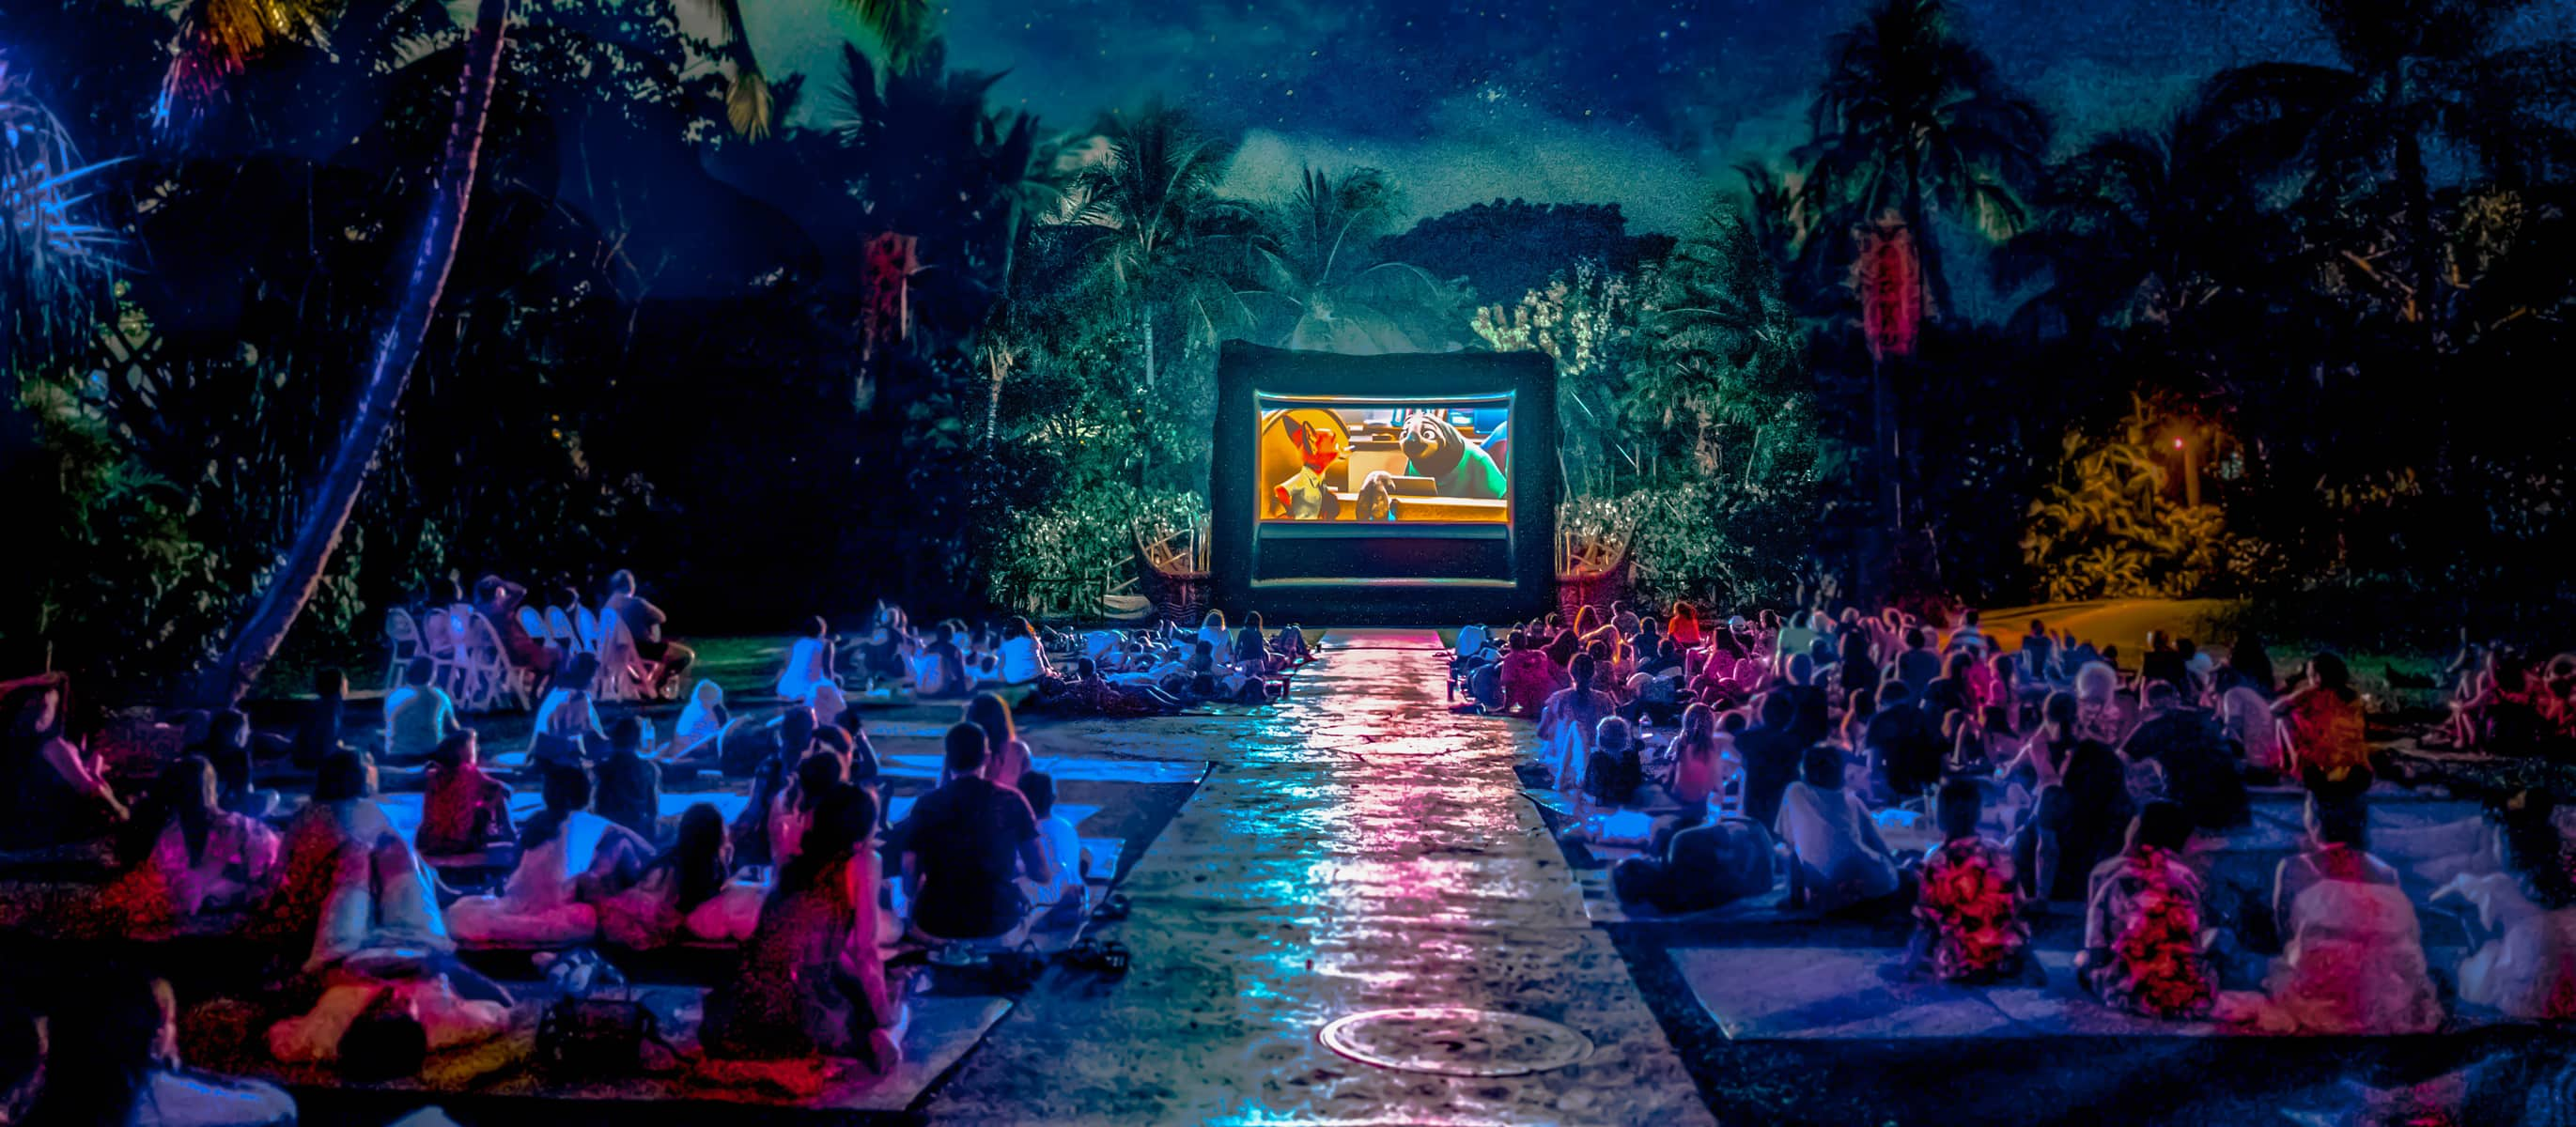 Guests seated on a large lawn, watching a movie screening after dark